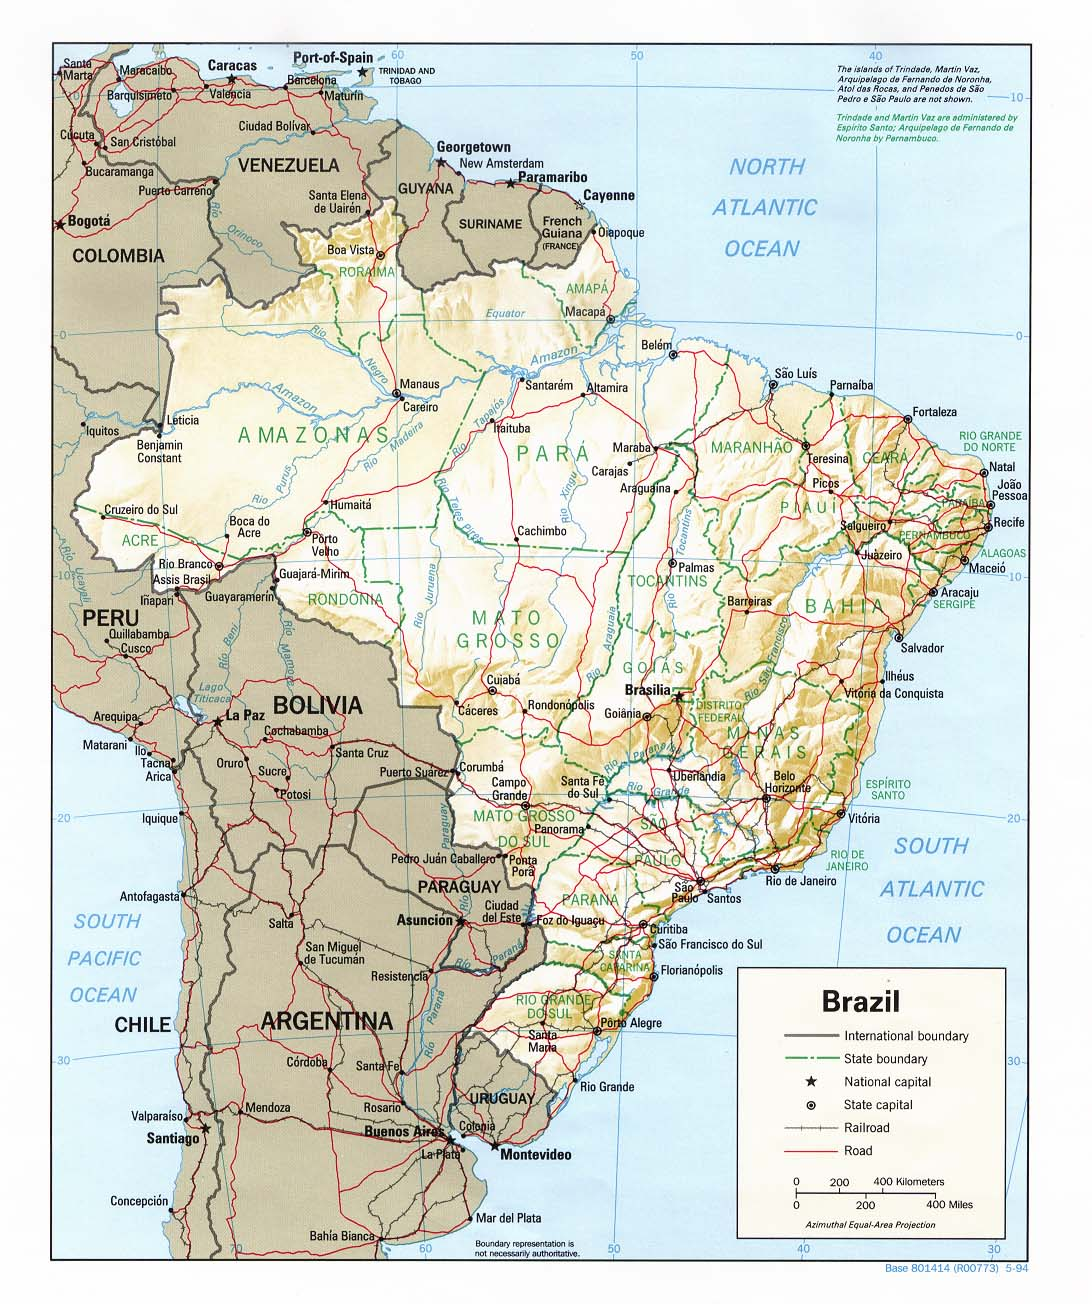 Brazil Shaded Relief